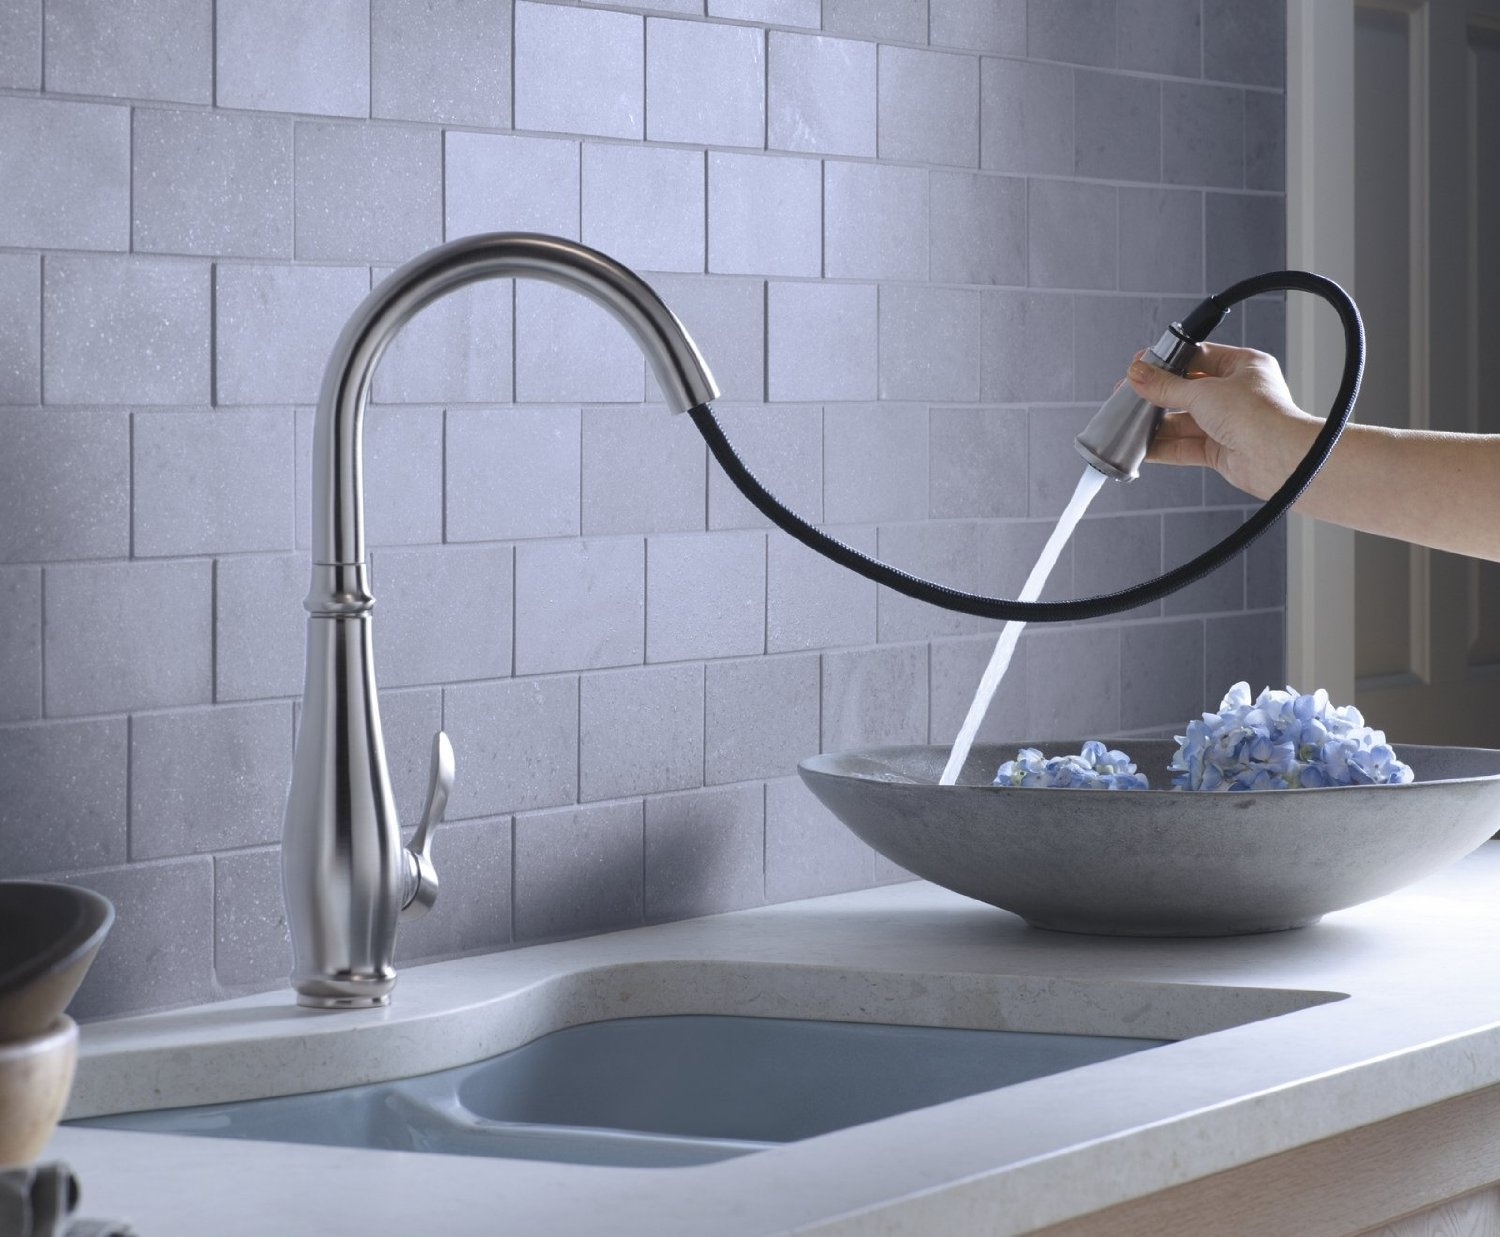 Ideas, kitchen faucet reviews and best buyers guides 2017 within dimensions 1500 x 1237  .